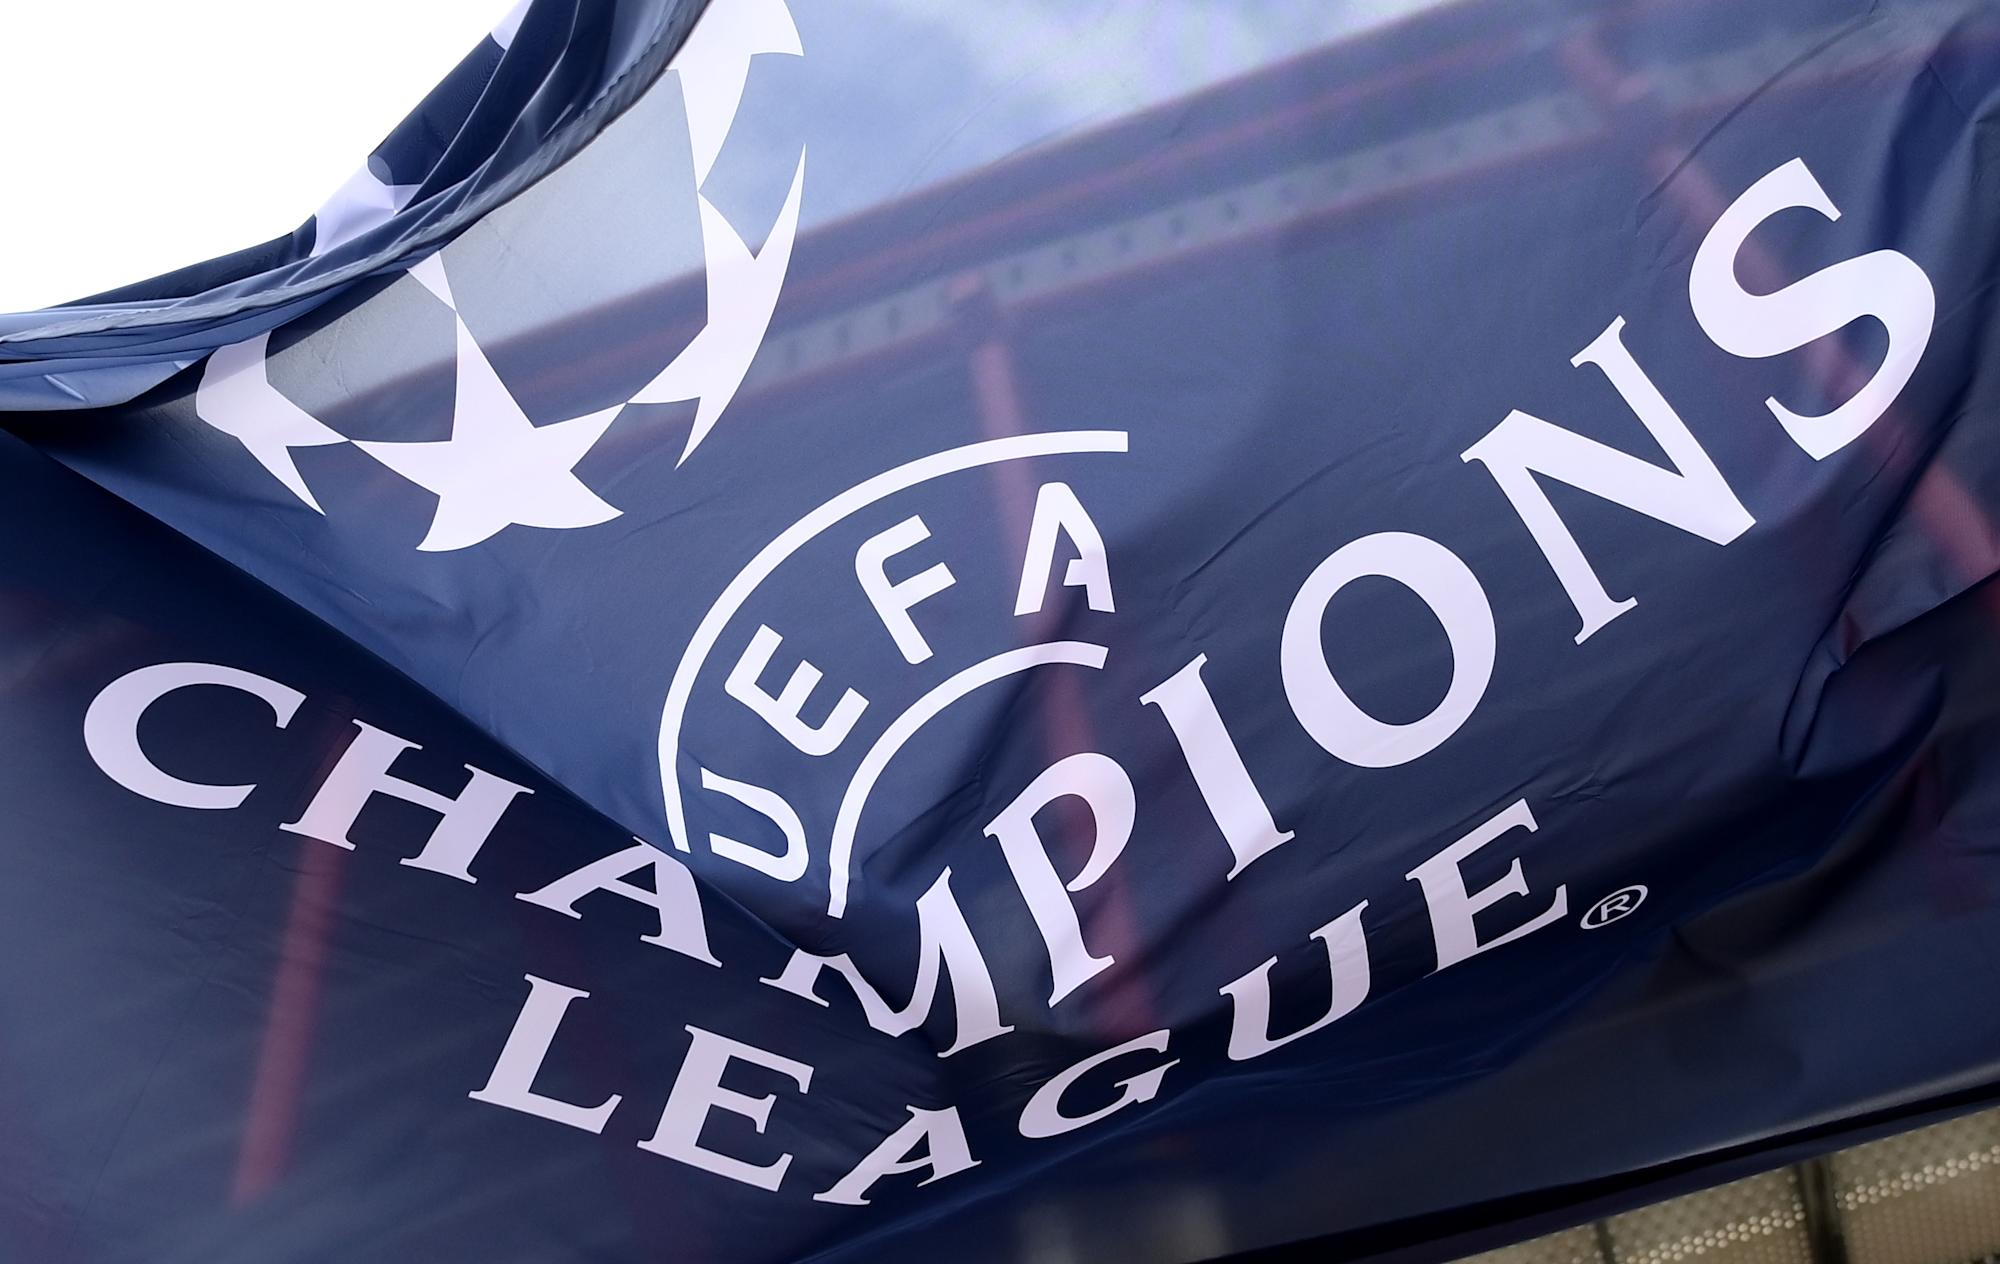 Dear UEFA: Stop making it so hard to watch the Champions League on television